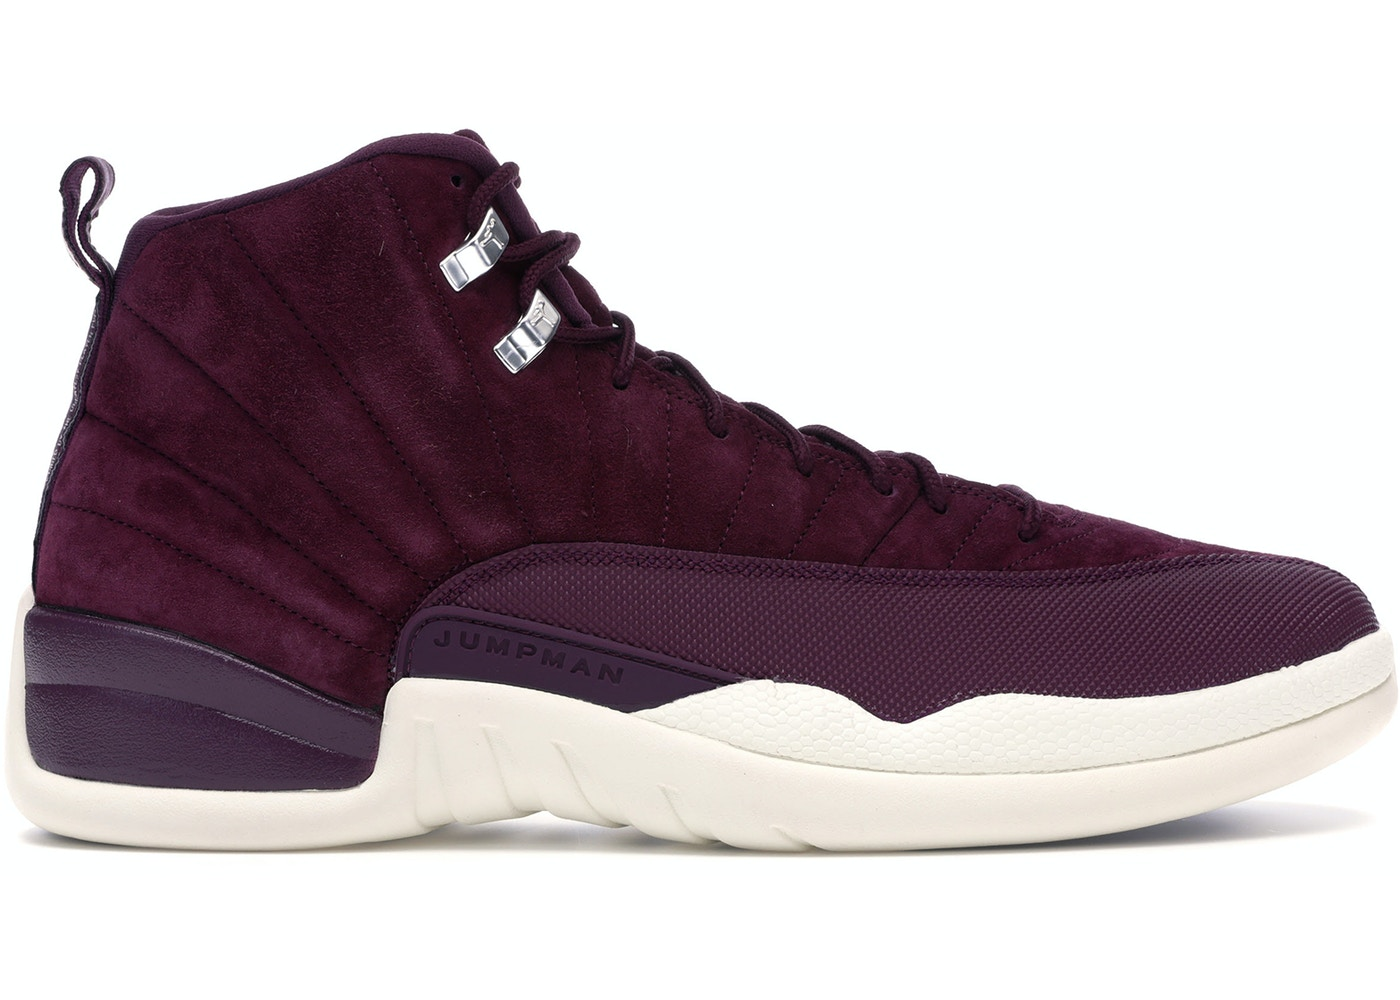 best sneakers ee62e c1181 Jordan 12 Retro Bordeaux